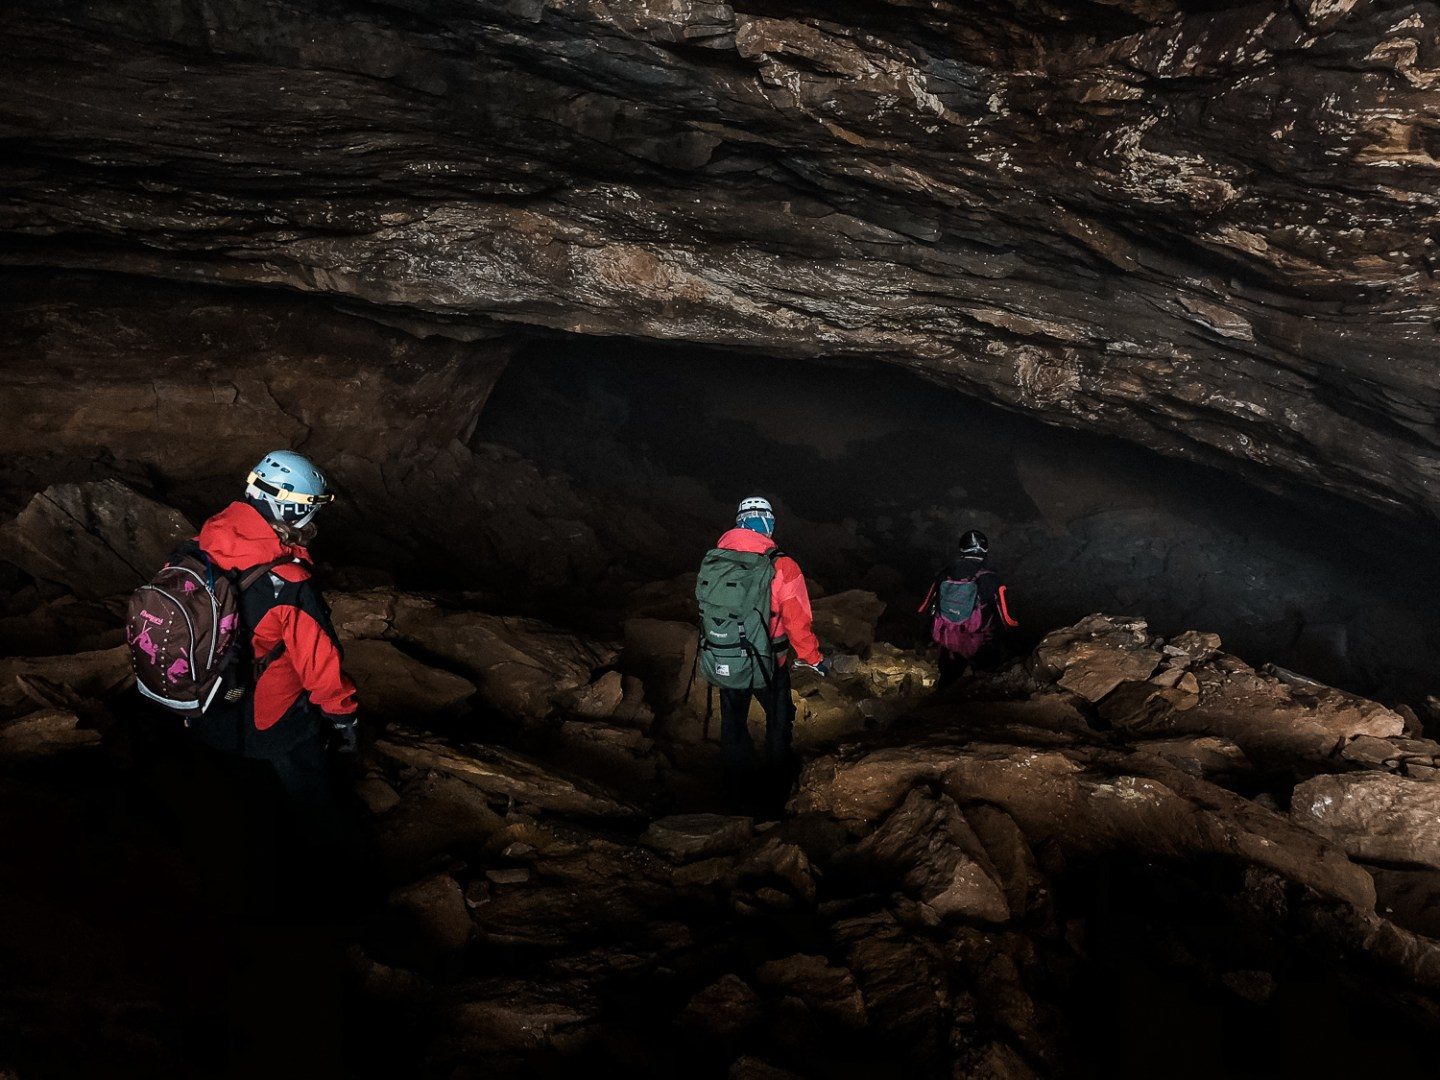 Things To Do In Bodø: Go caving